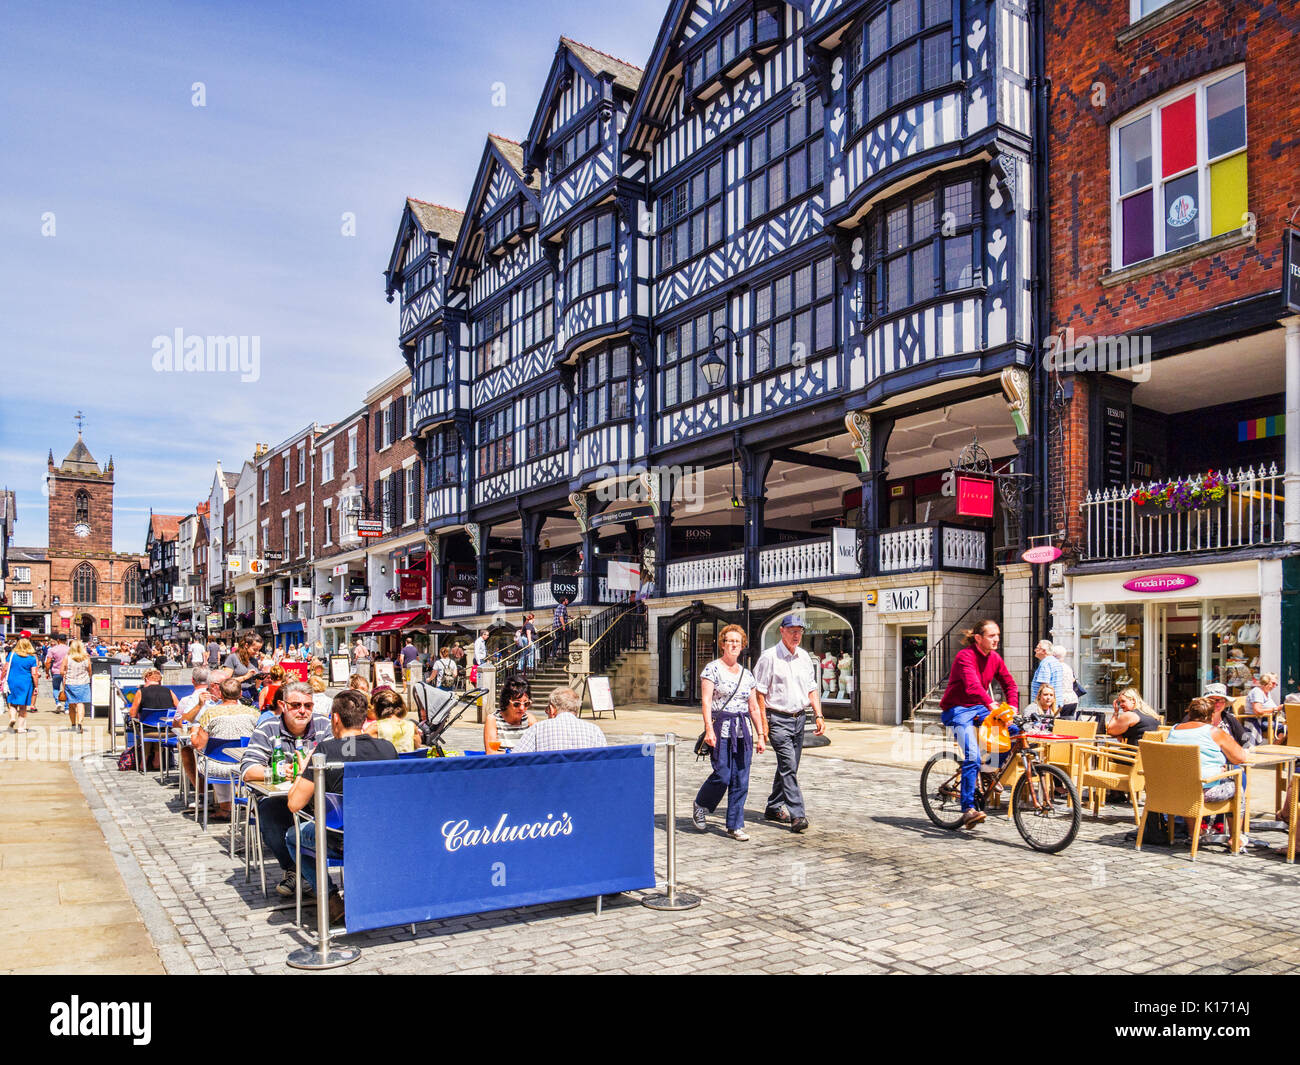 18 July 2017: Chester, Cheshire, England, UK - Half timbered houses in Bridge Street, and Carluccio's restaurant, with people sitting outside in the s Stock Photo